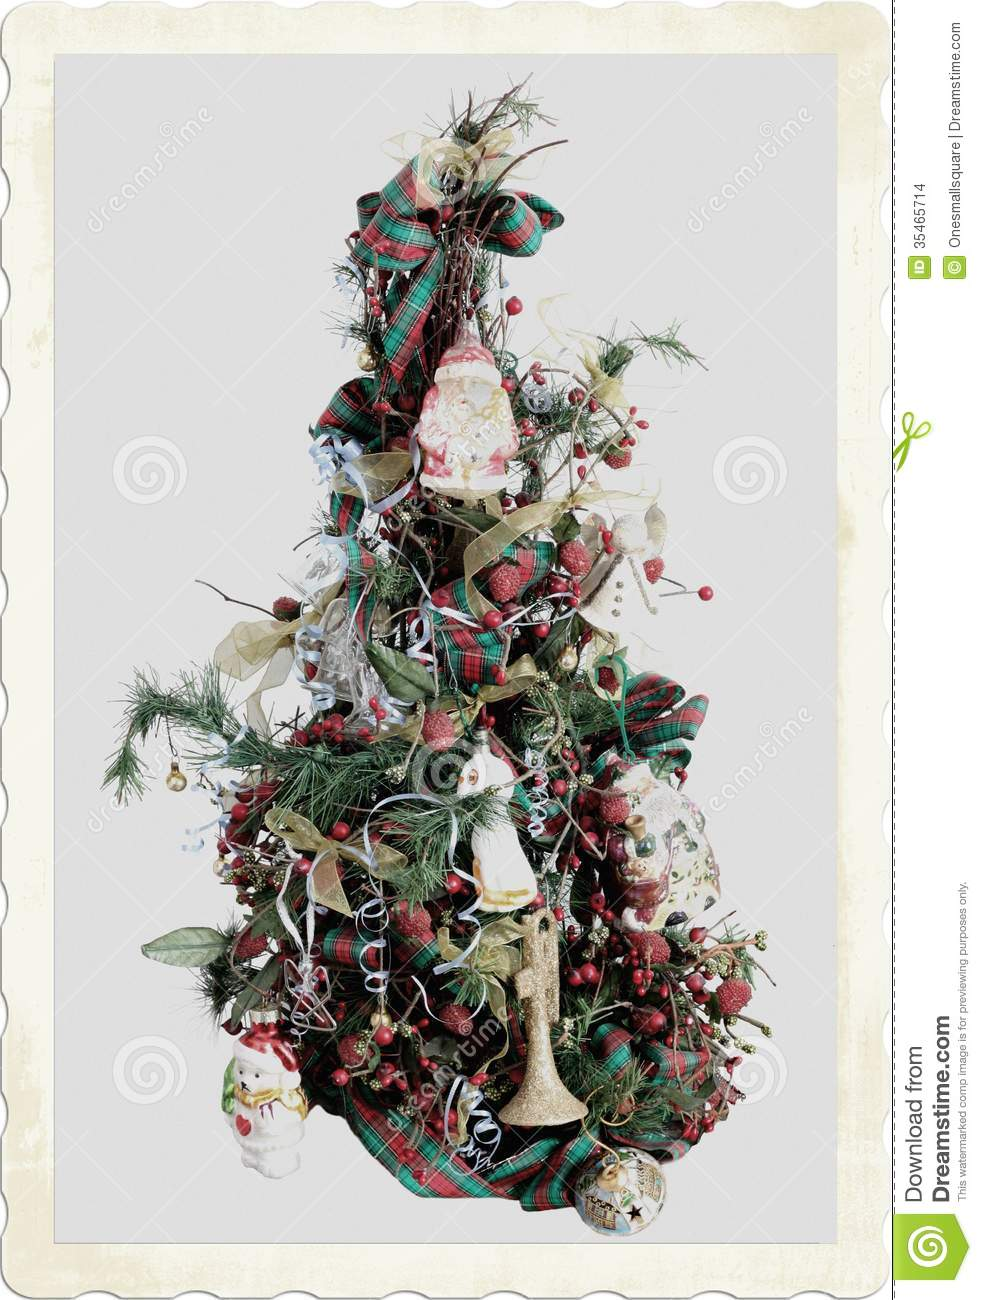 Old Fashioned Christmas stock photo. Image of grey, timey ...